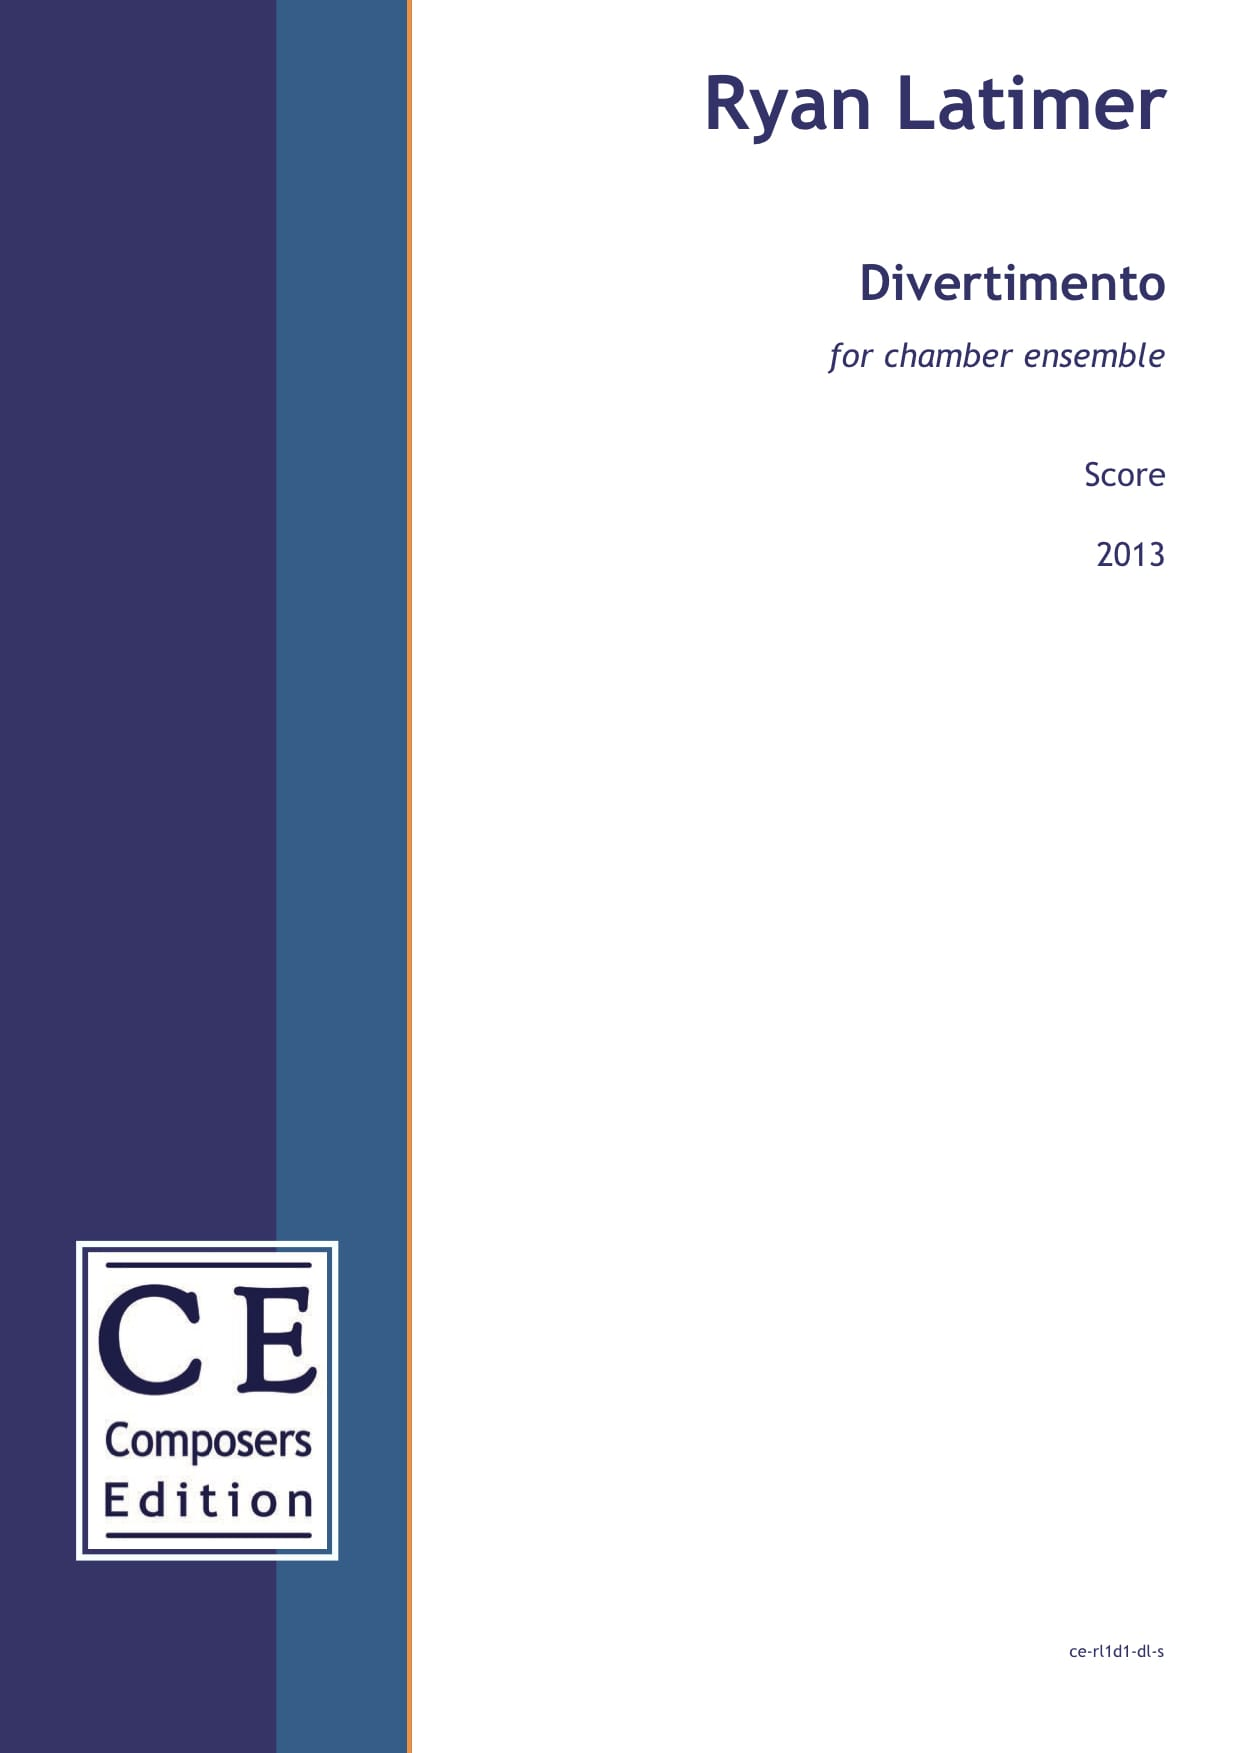 Ryan Latimer: Divertimento for chamber ensemble